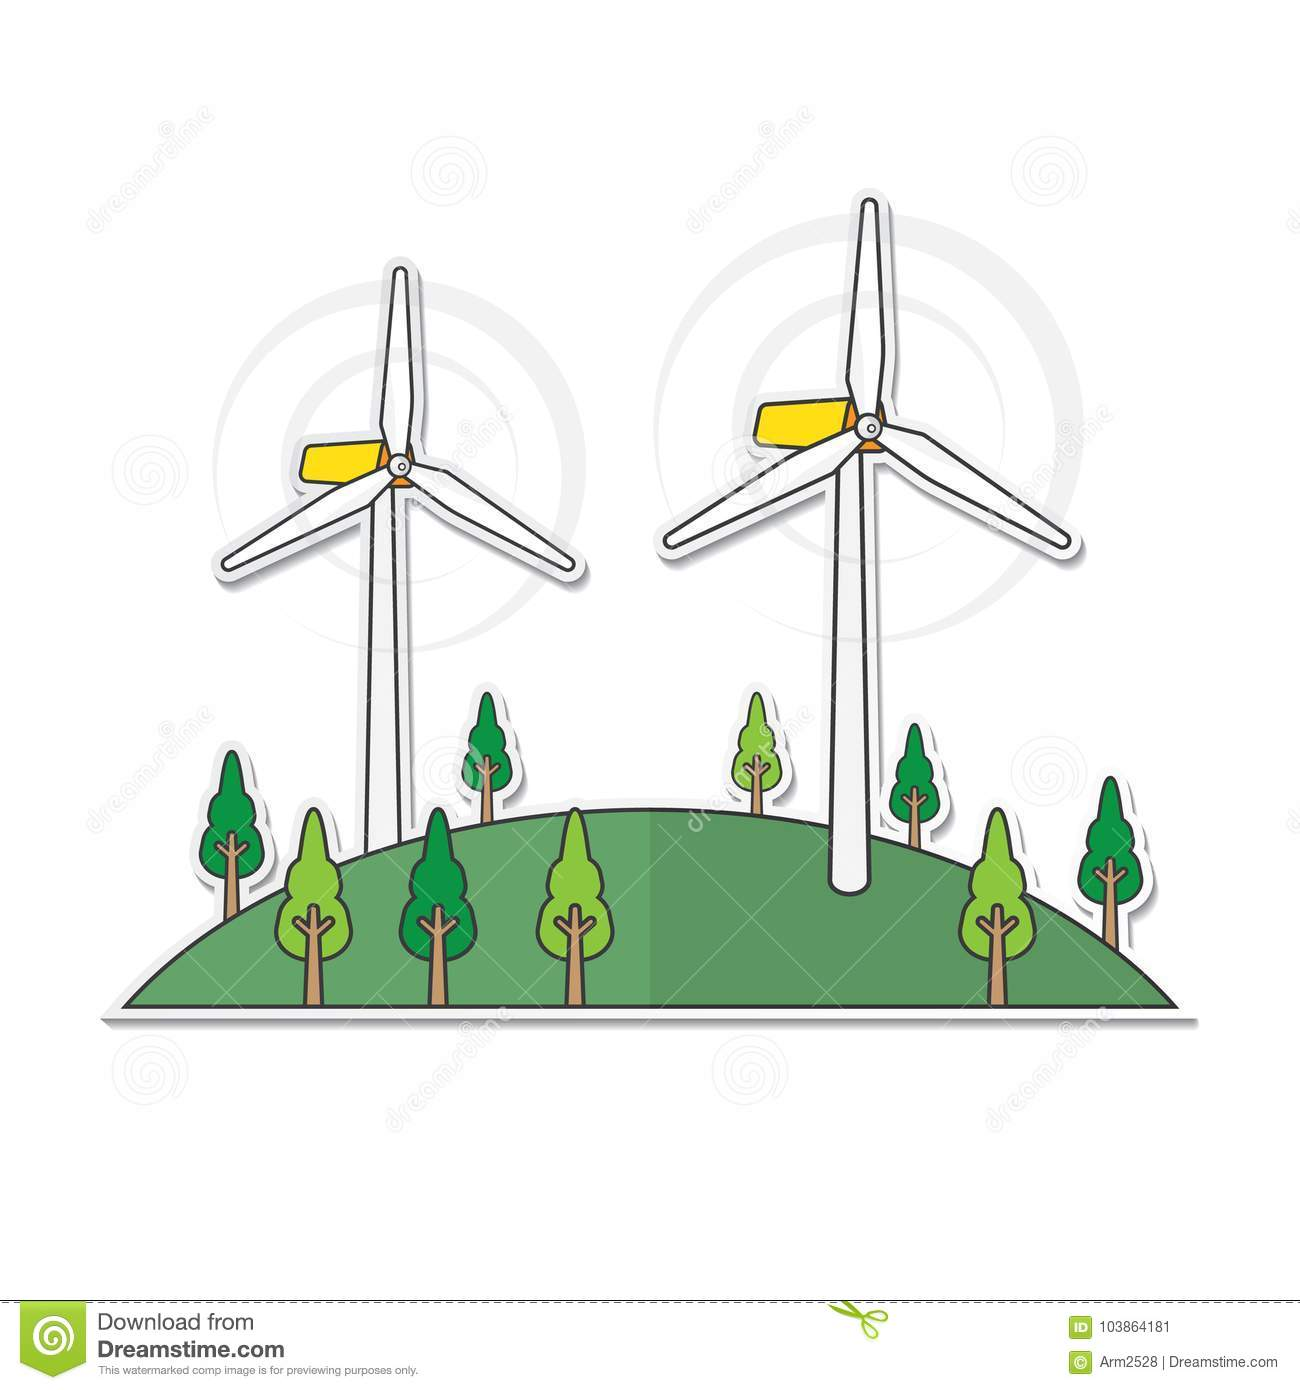 Wind Turbine In Simple Graphic Stock Vector Illustration Of Diagrams